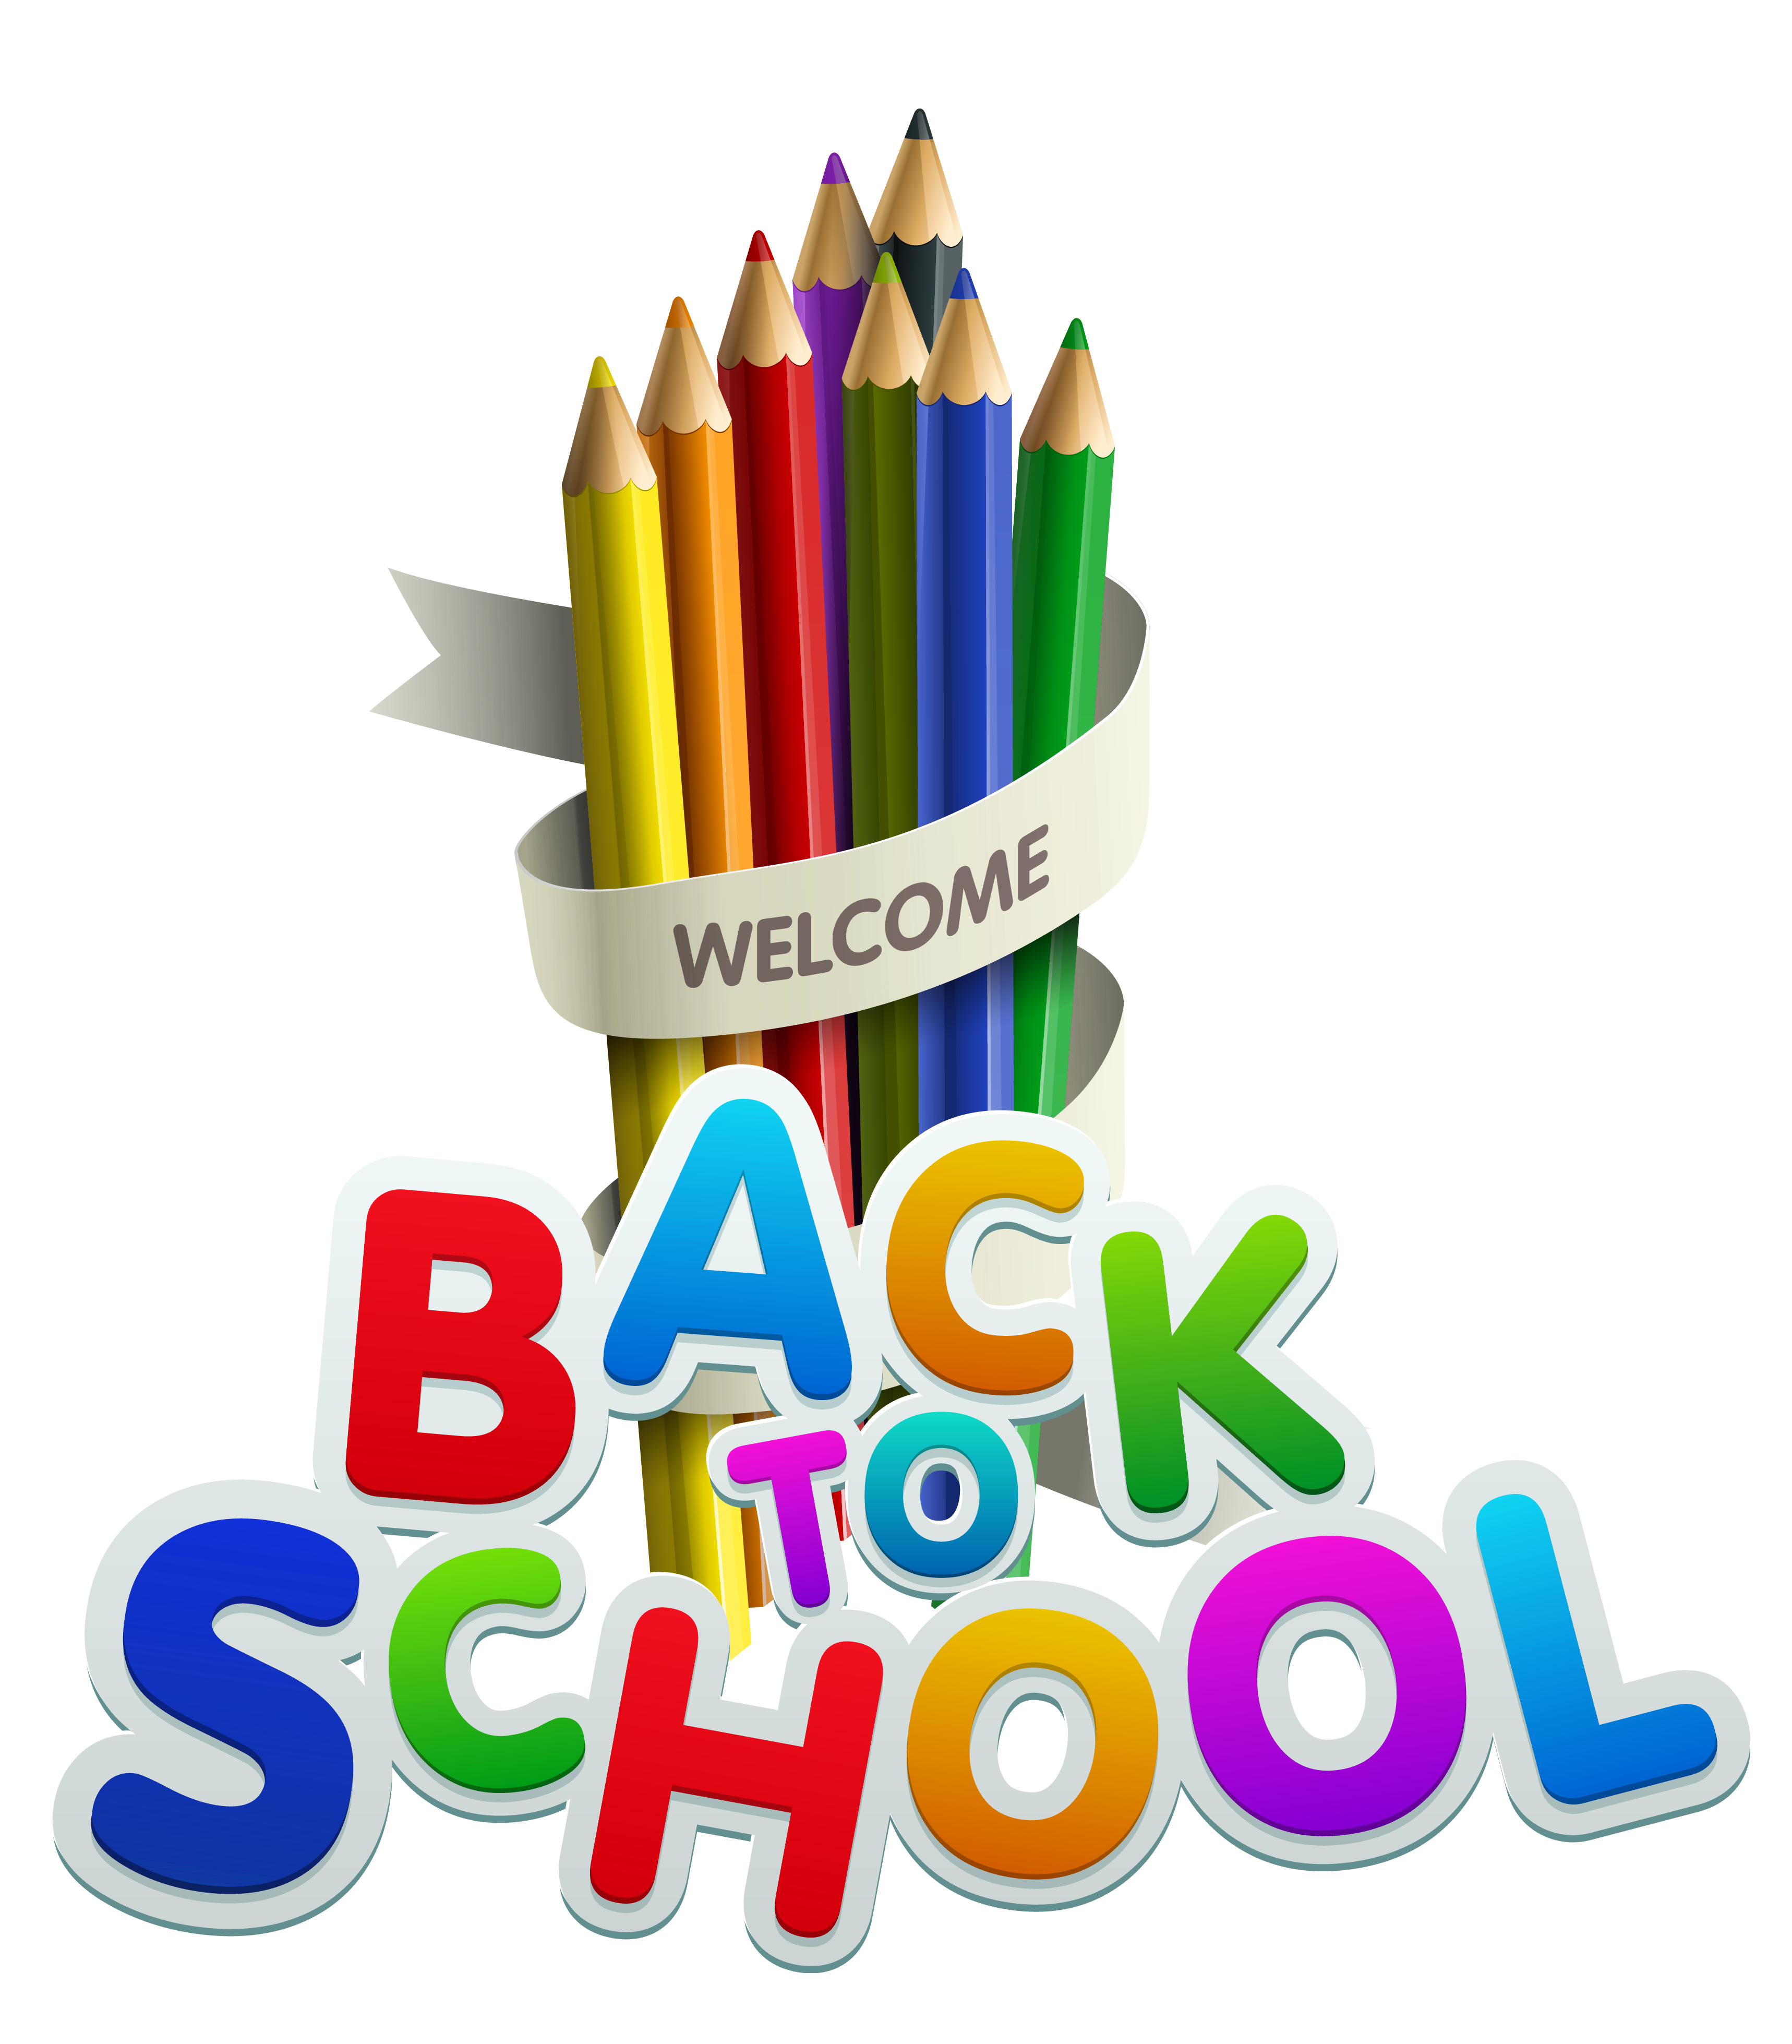 Free Back To School Clipart .-Free back to school clipart .-4